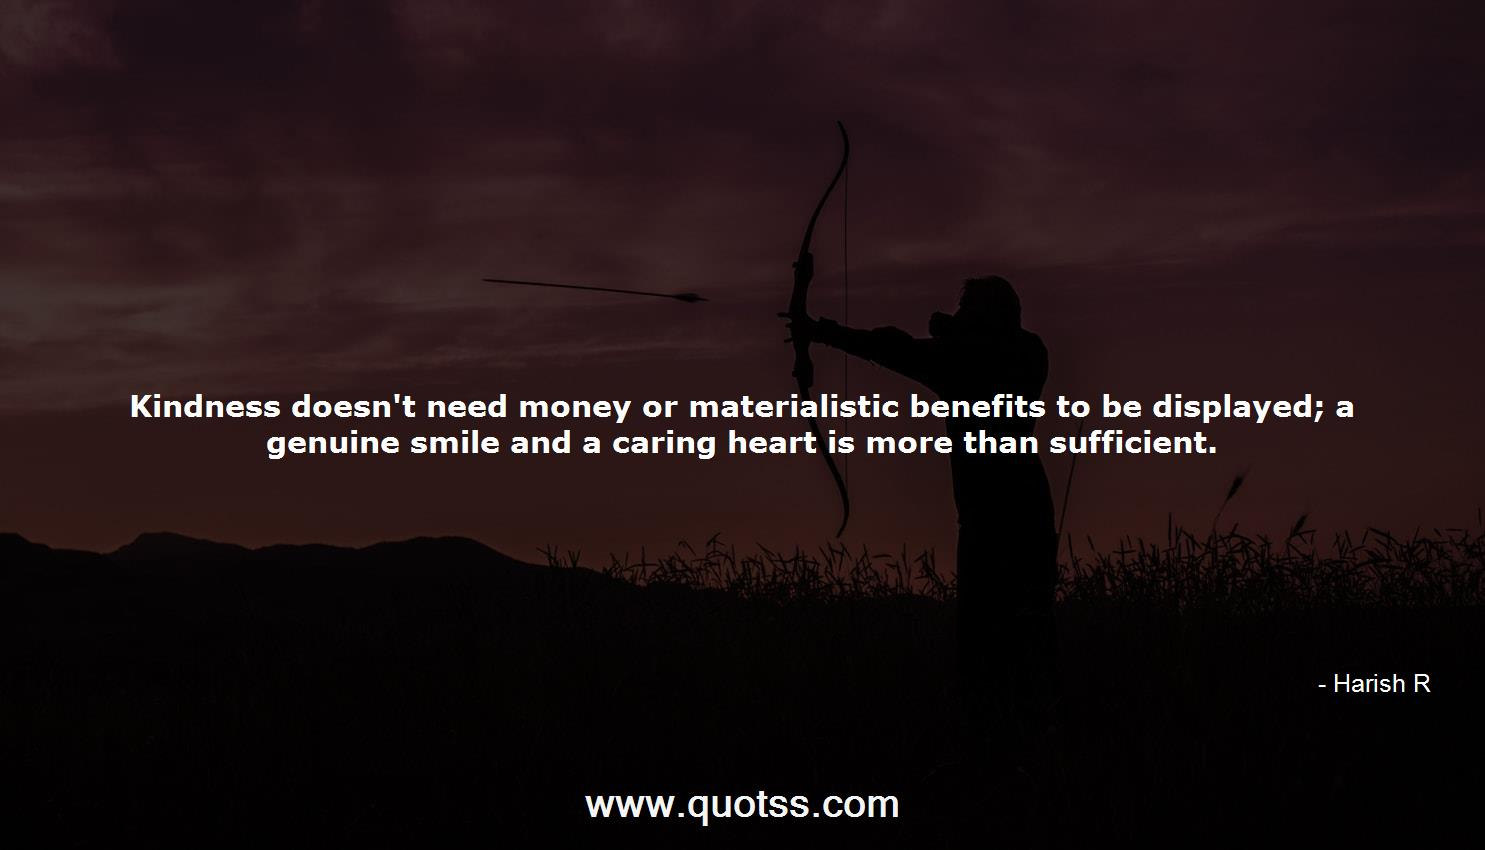 Kindness Doesnt Need Money Or Materialistic Benefits To Be